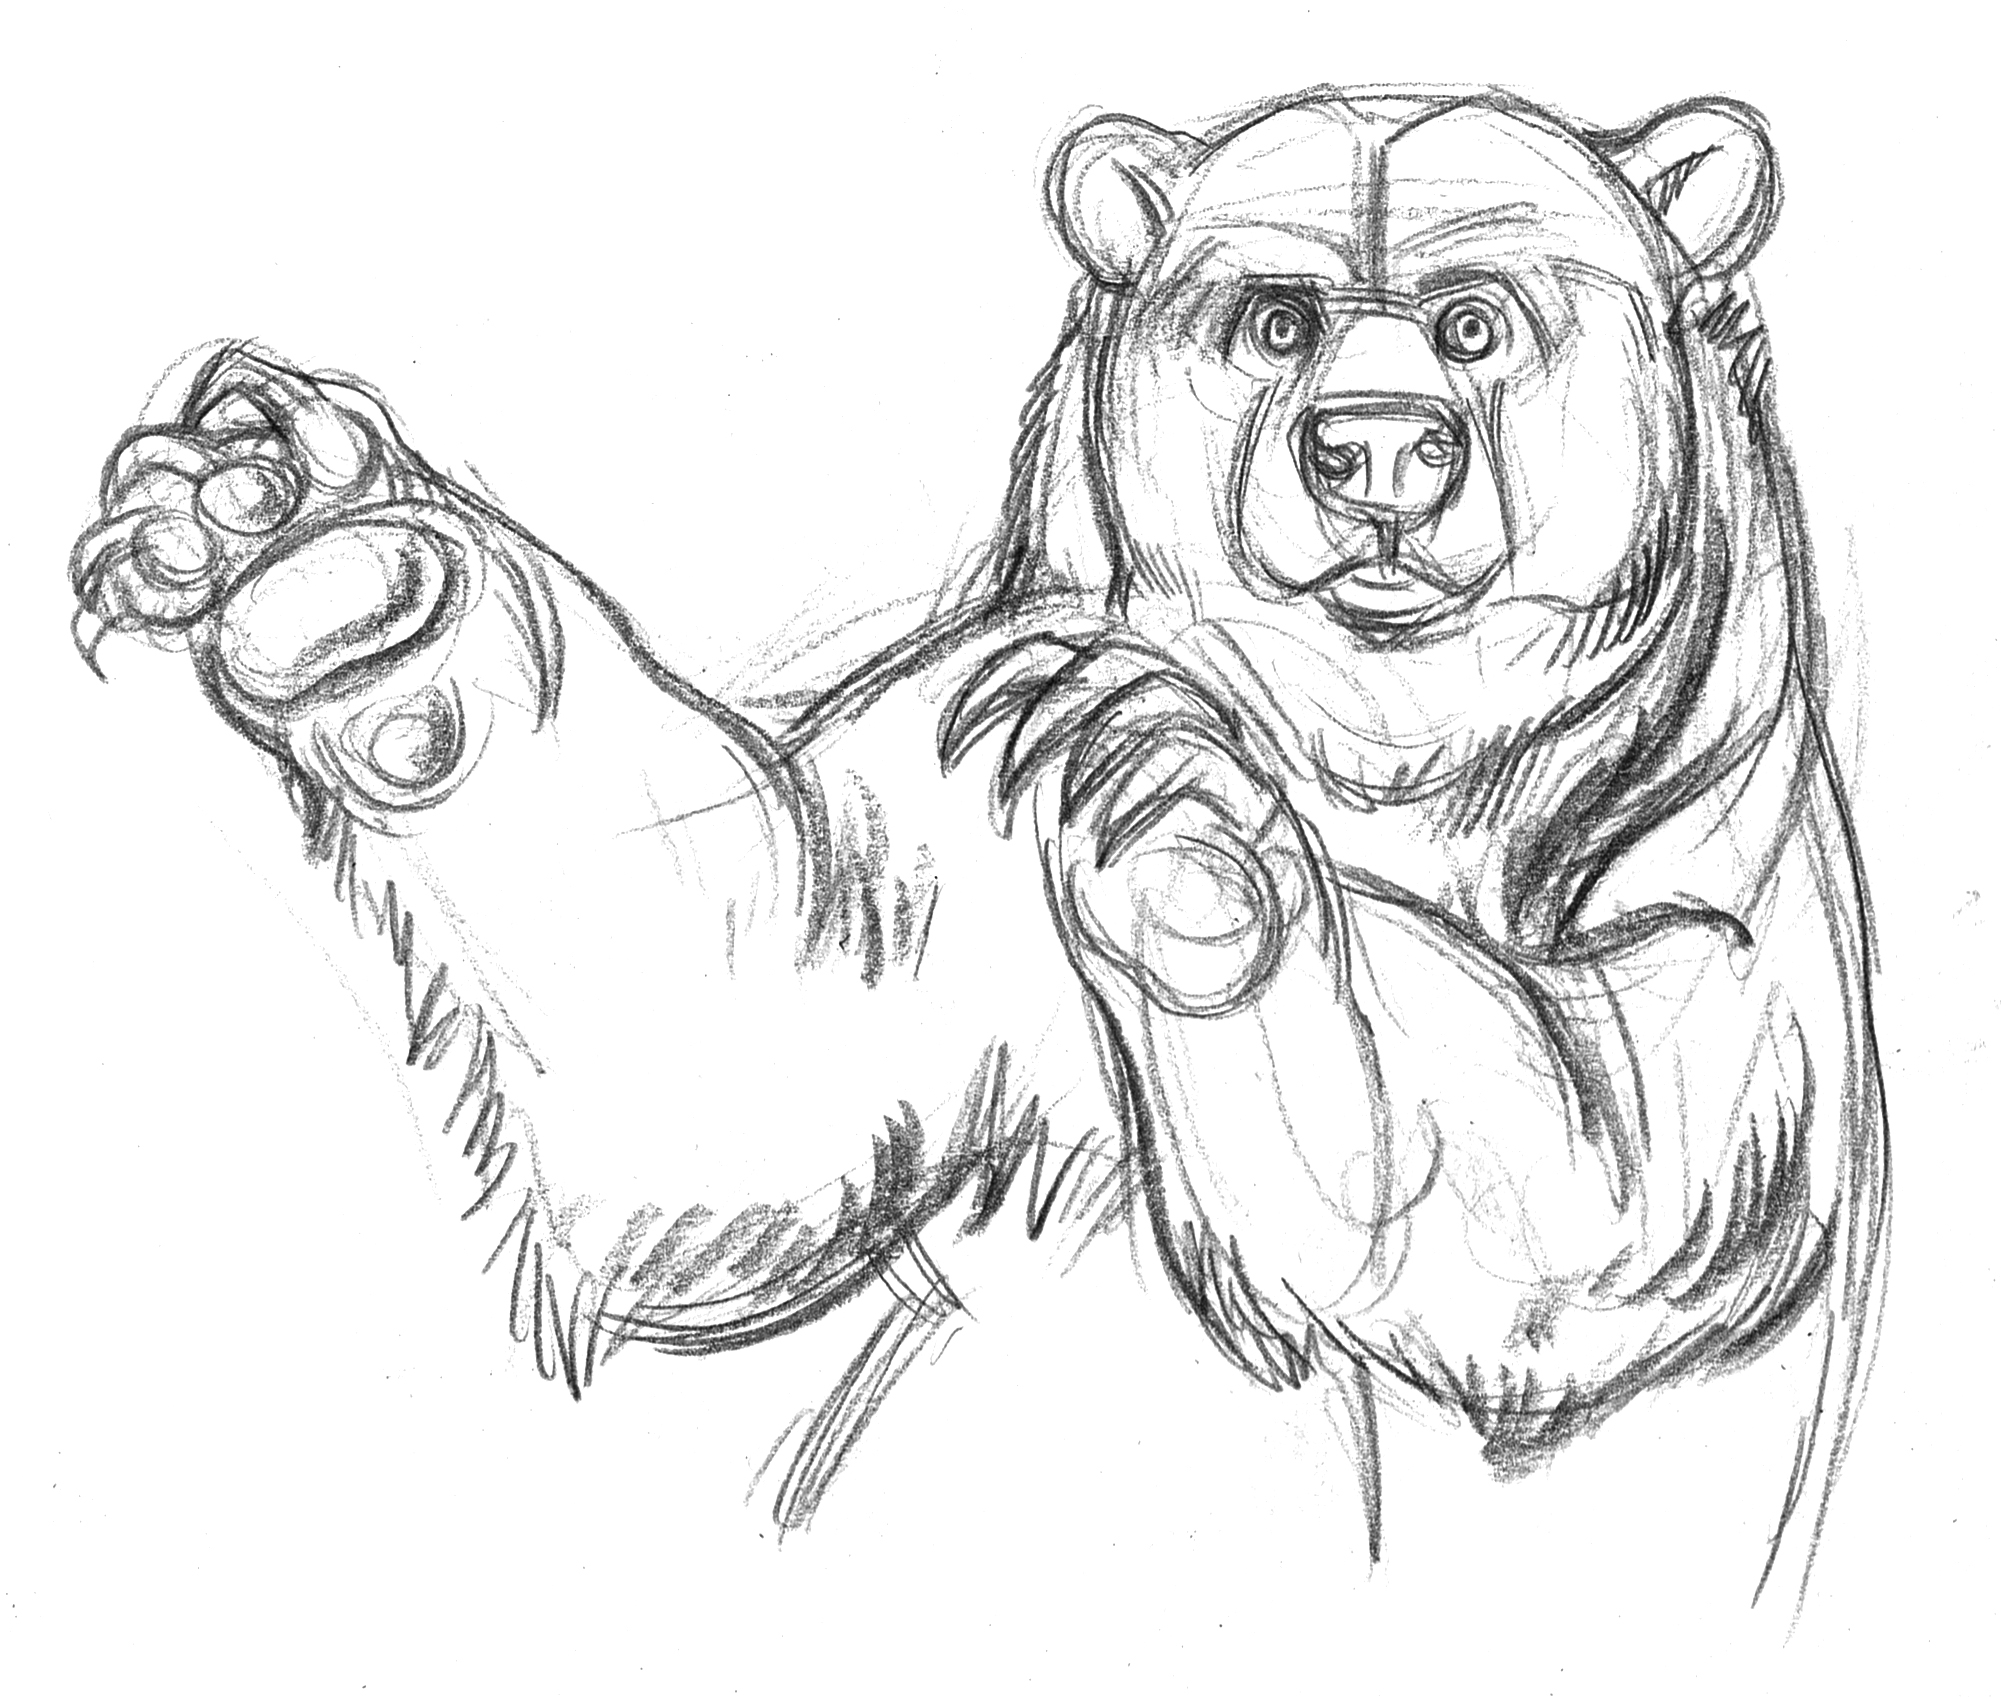 2001x1697 Playful Grizzly Bear Drawn In Pencil